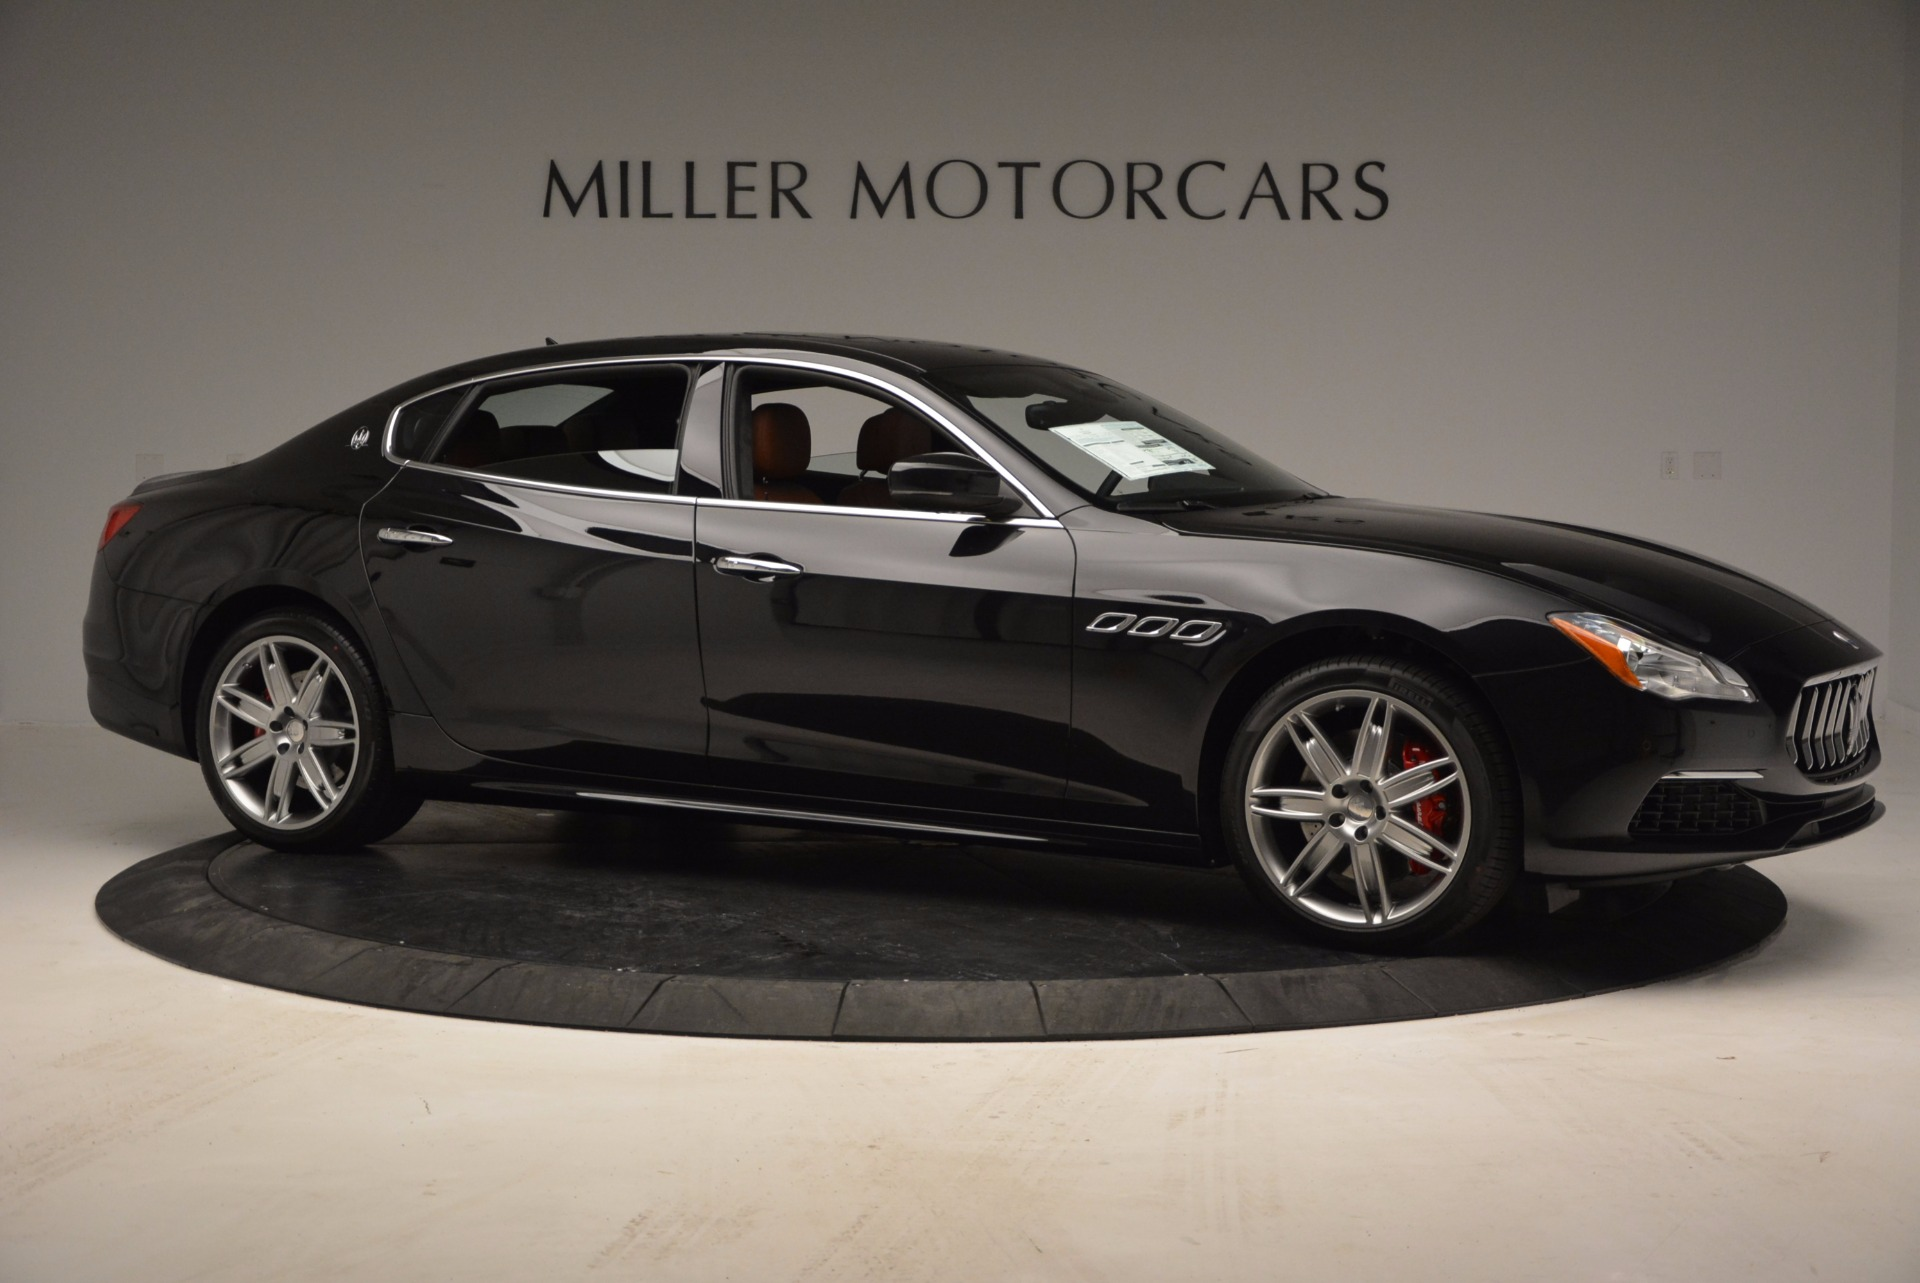 New 2017 Maserati Quattroporte S Q4 GranLusso For Sale In Greenwich, CT 716_p10